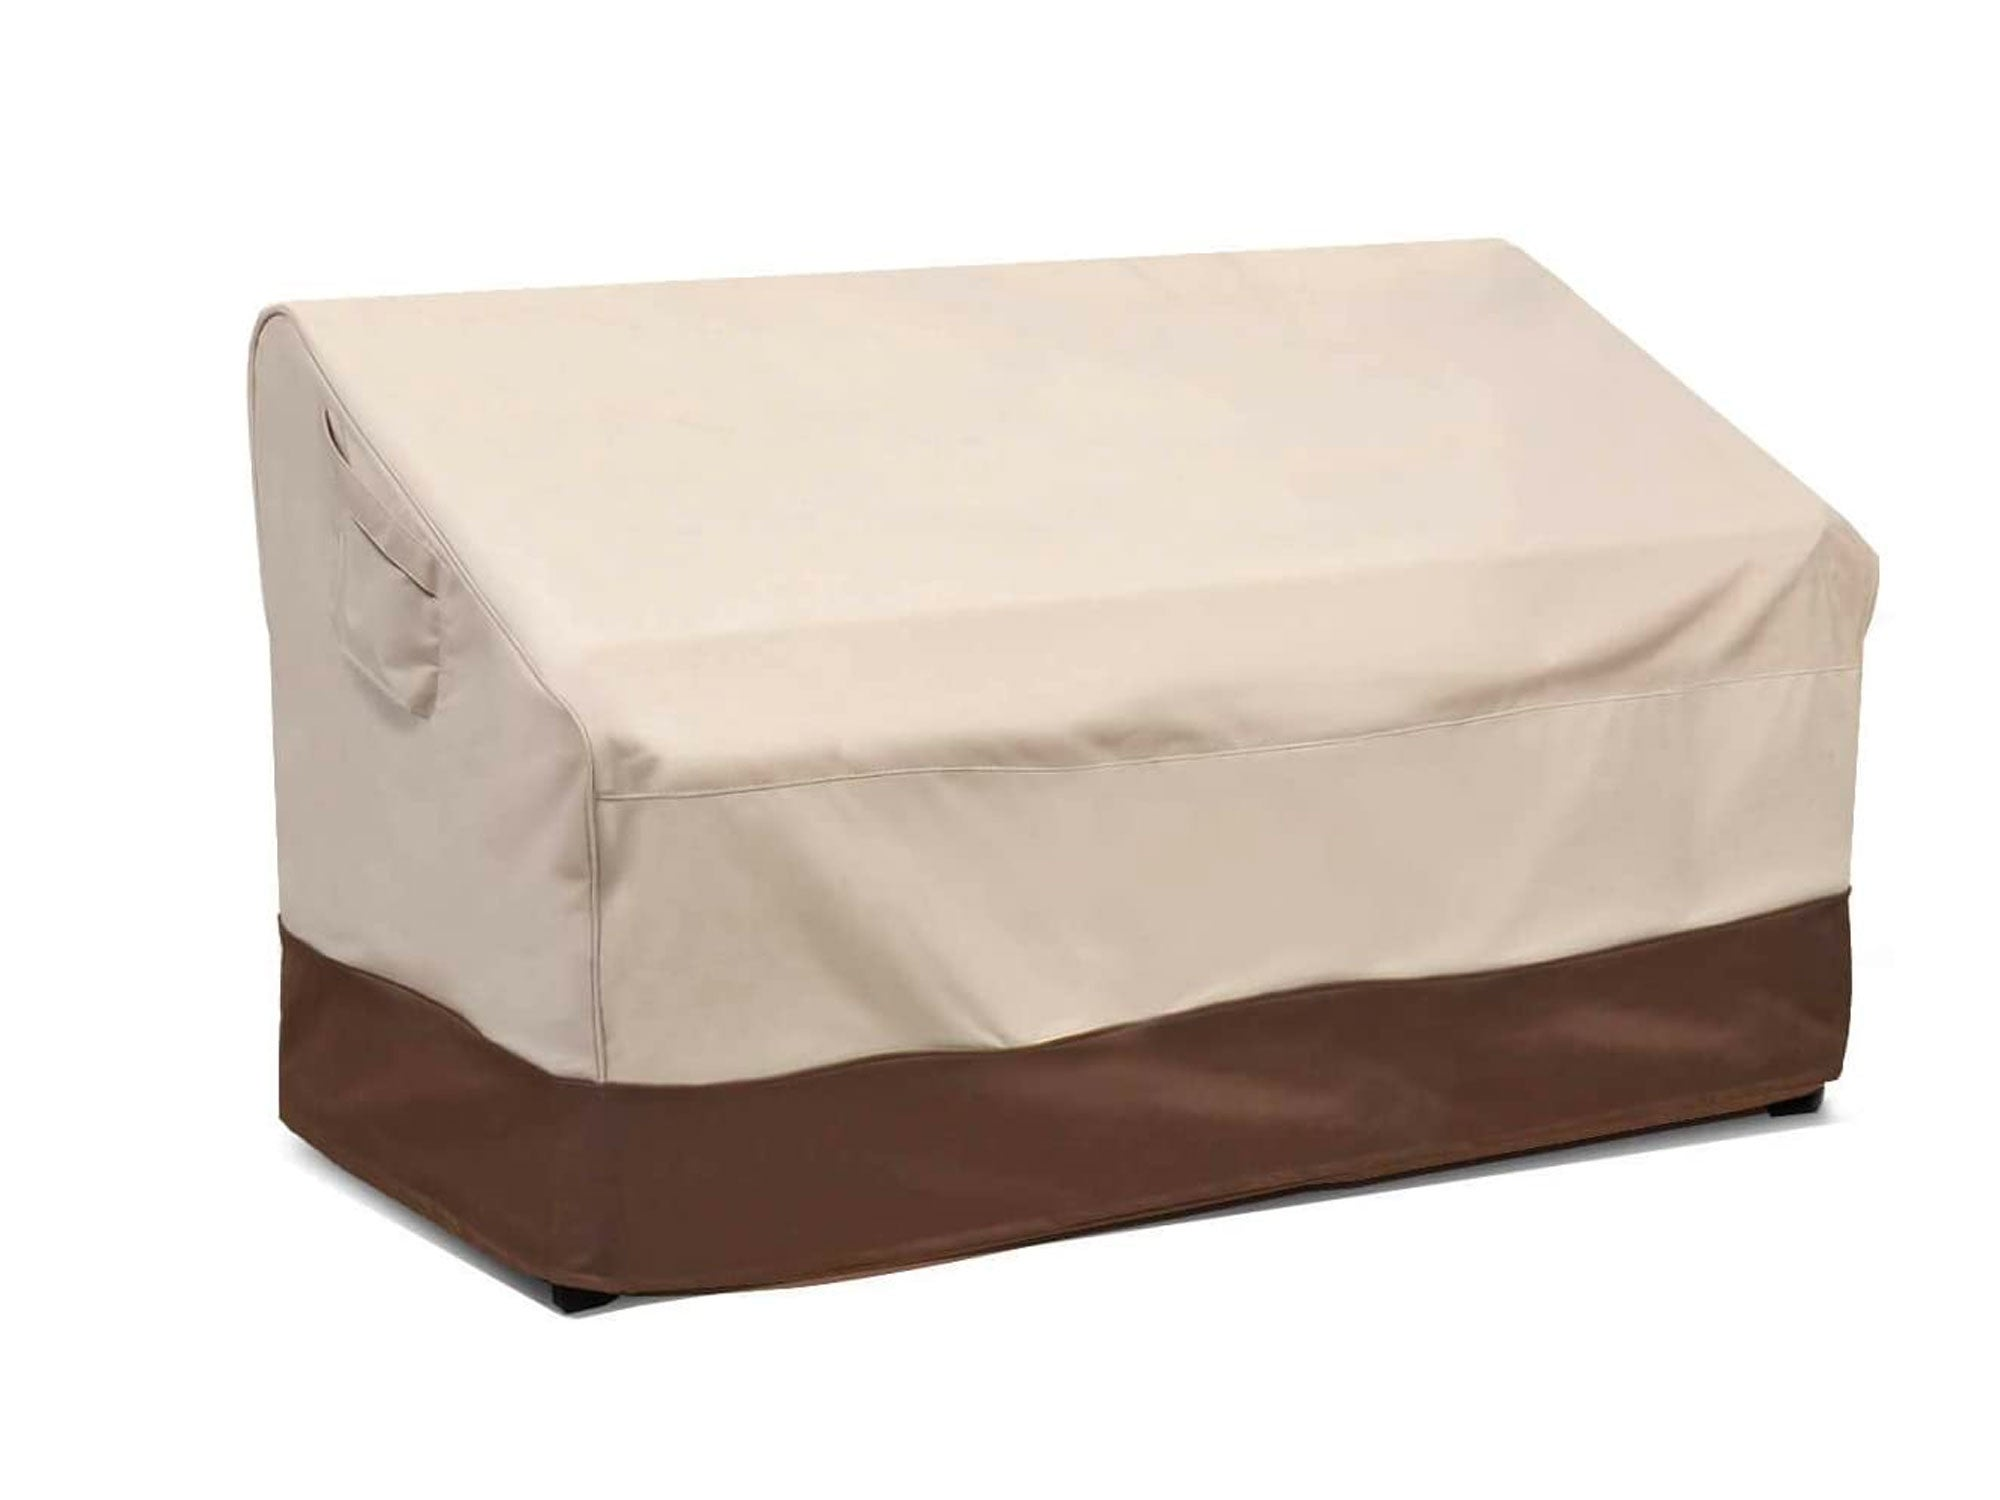 Vailge Heavy Duty Deep Patio Sofa Cover,100% Waterproof Outdoor Sofa Cover, Large Lawn Patio Furniture Covers with Air Vent, Large (Deep), Beige & Brown